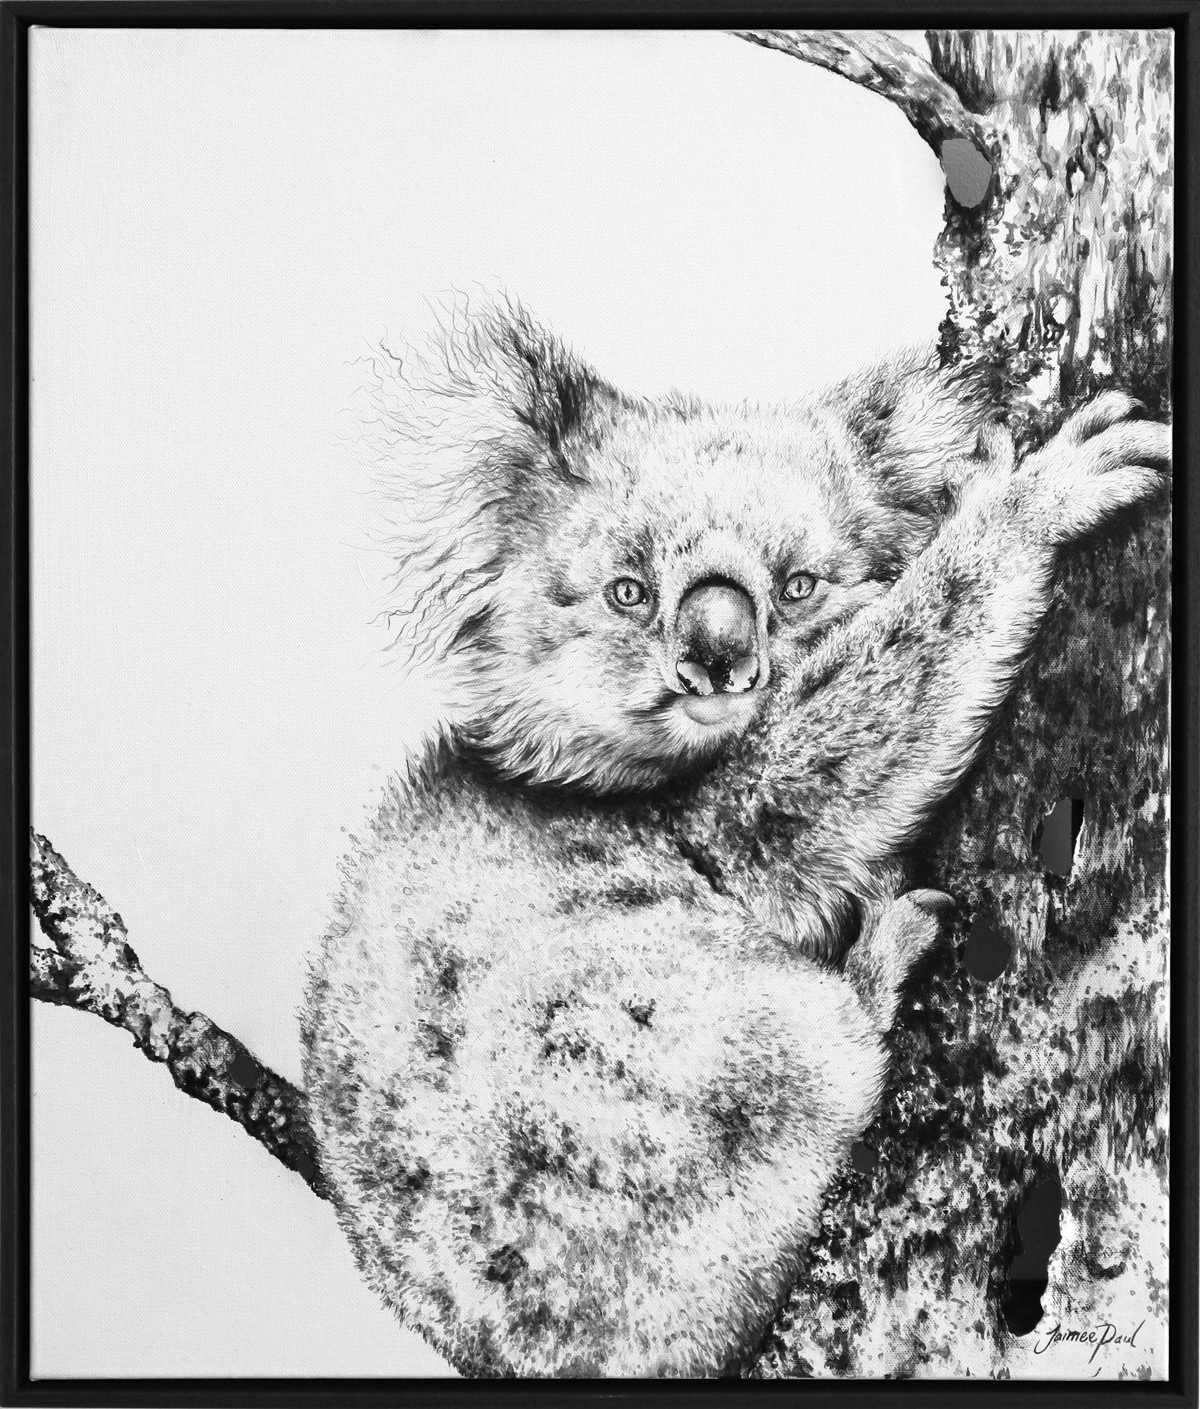 Living with Koalas artist Jaimee PAUL ' Countless'